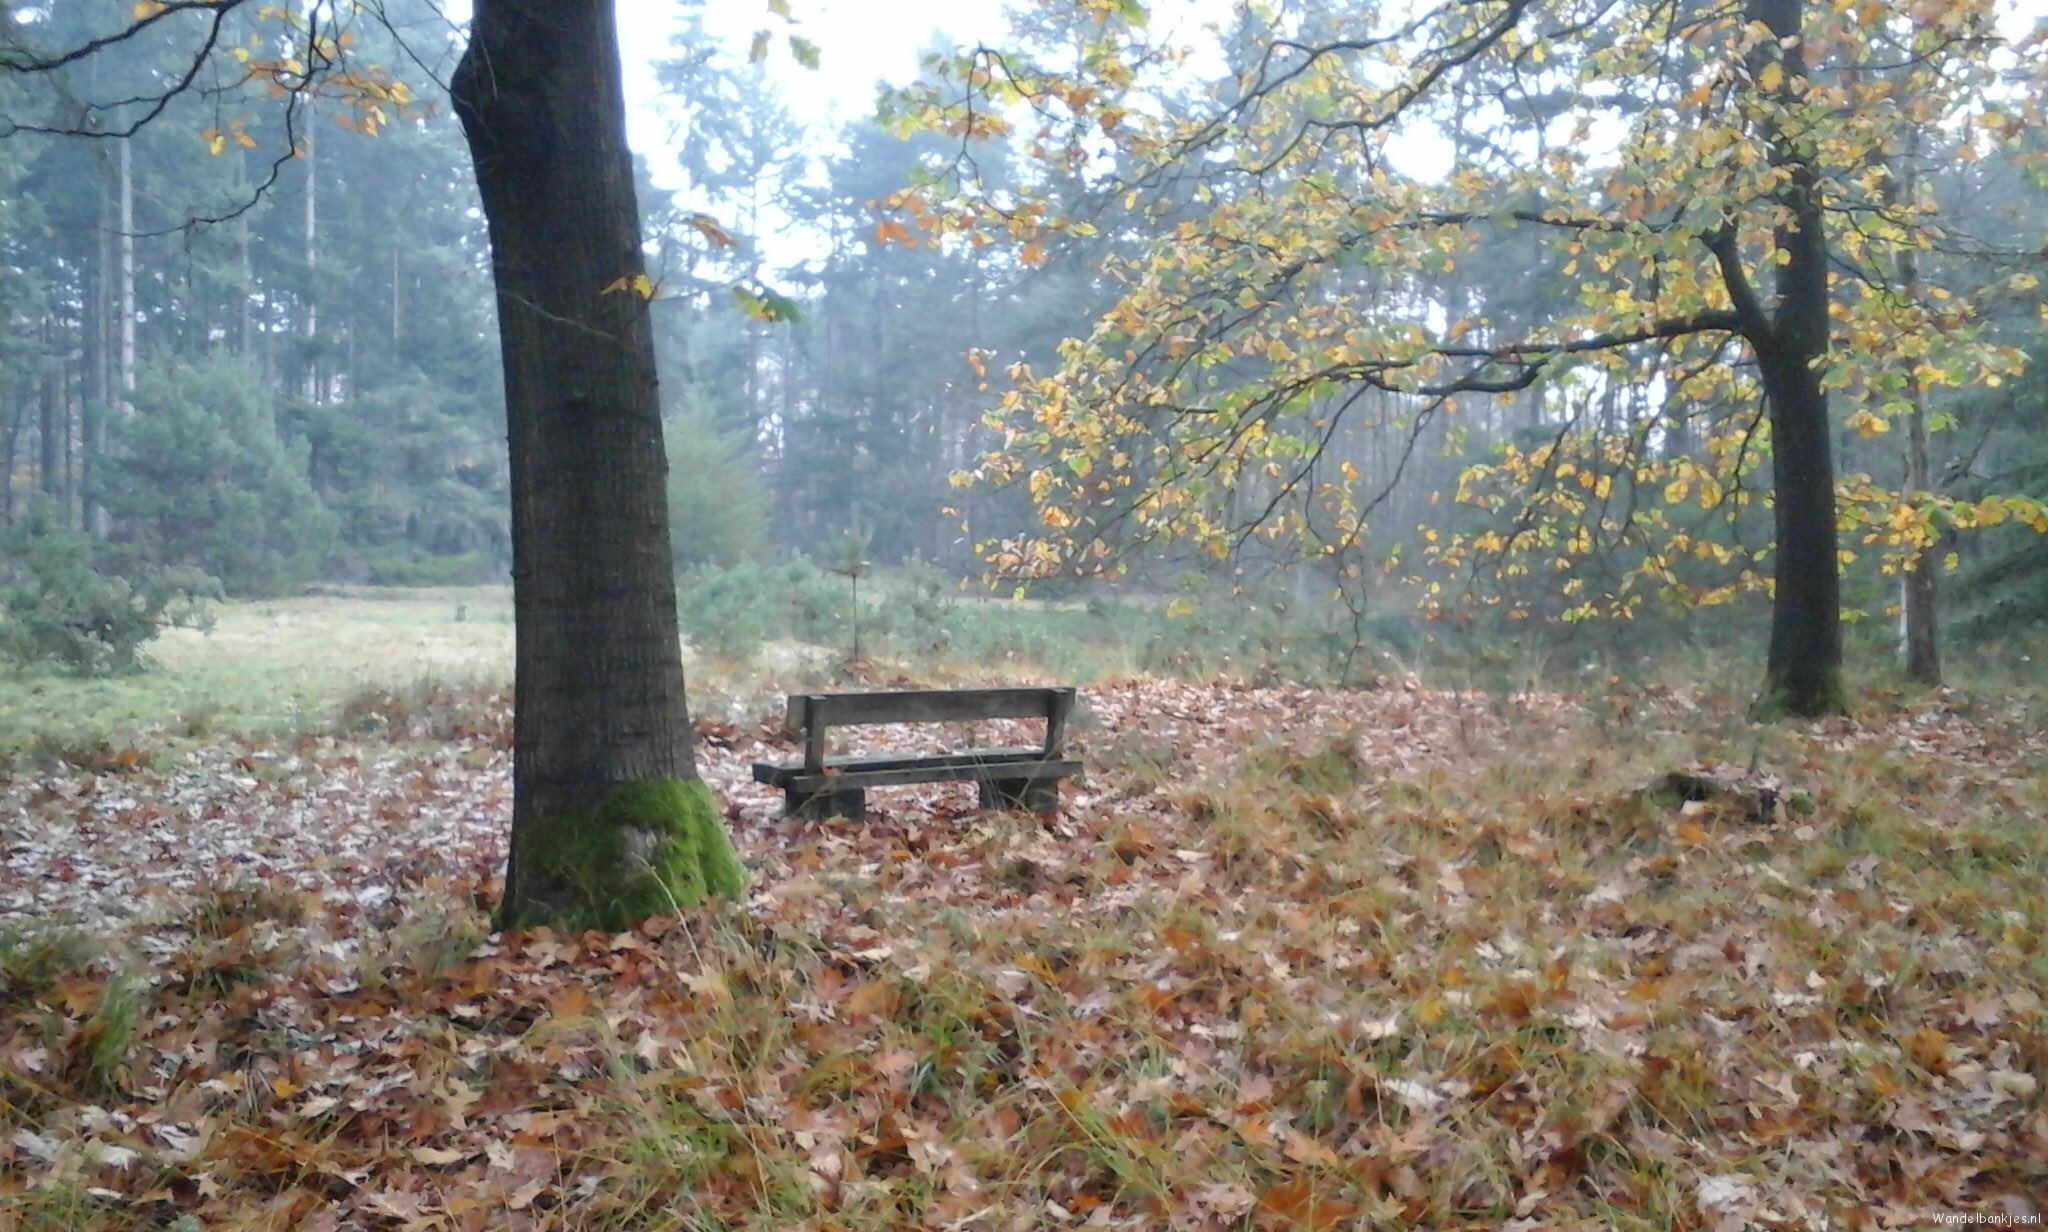 rt-verhoeven_marij-walking-bench-in-the-ripse-woods-walking-benches-httpst-cowtzcwlycnp